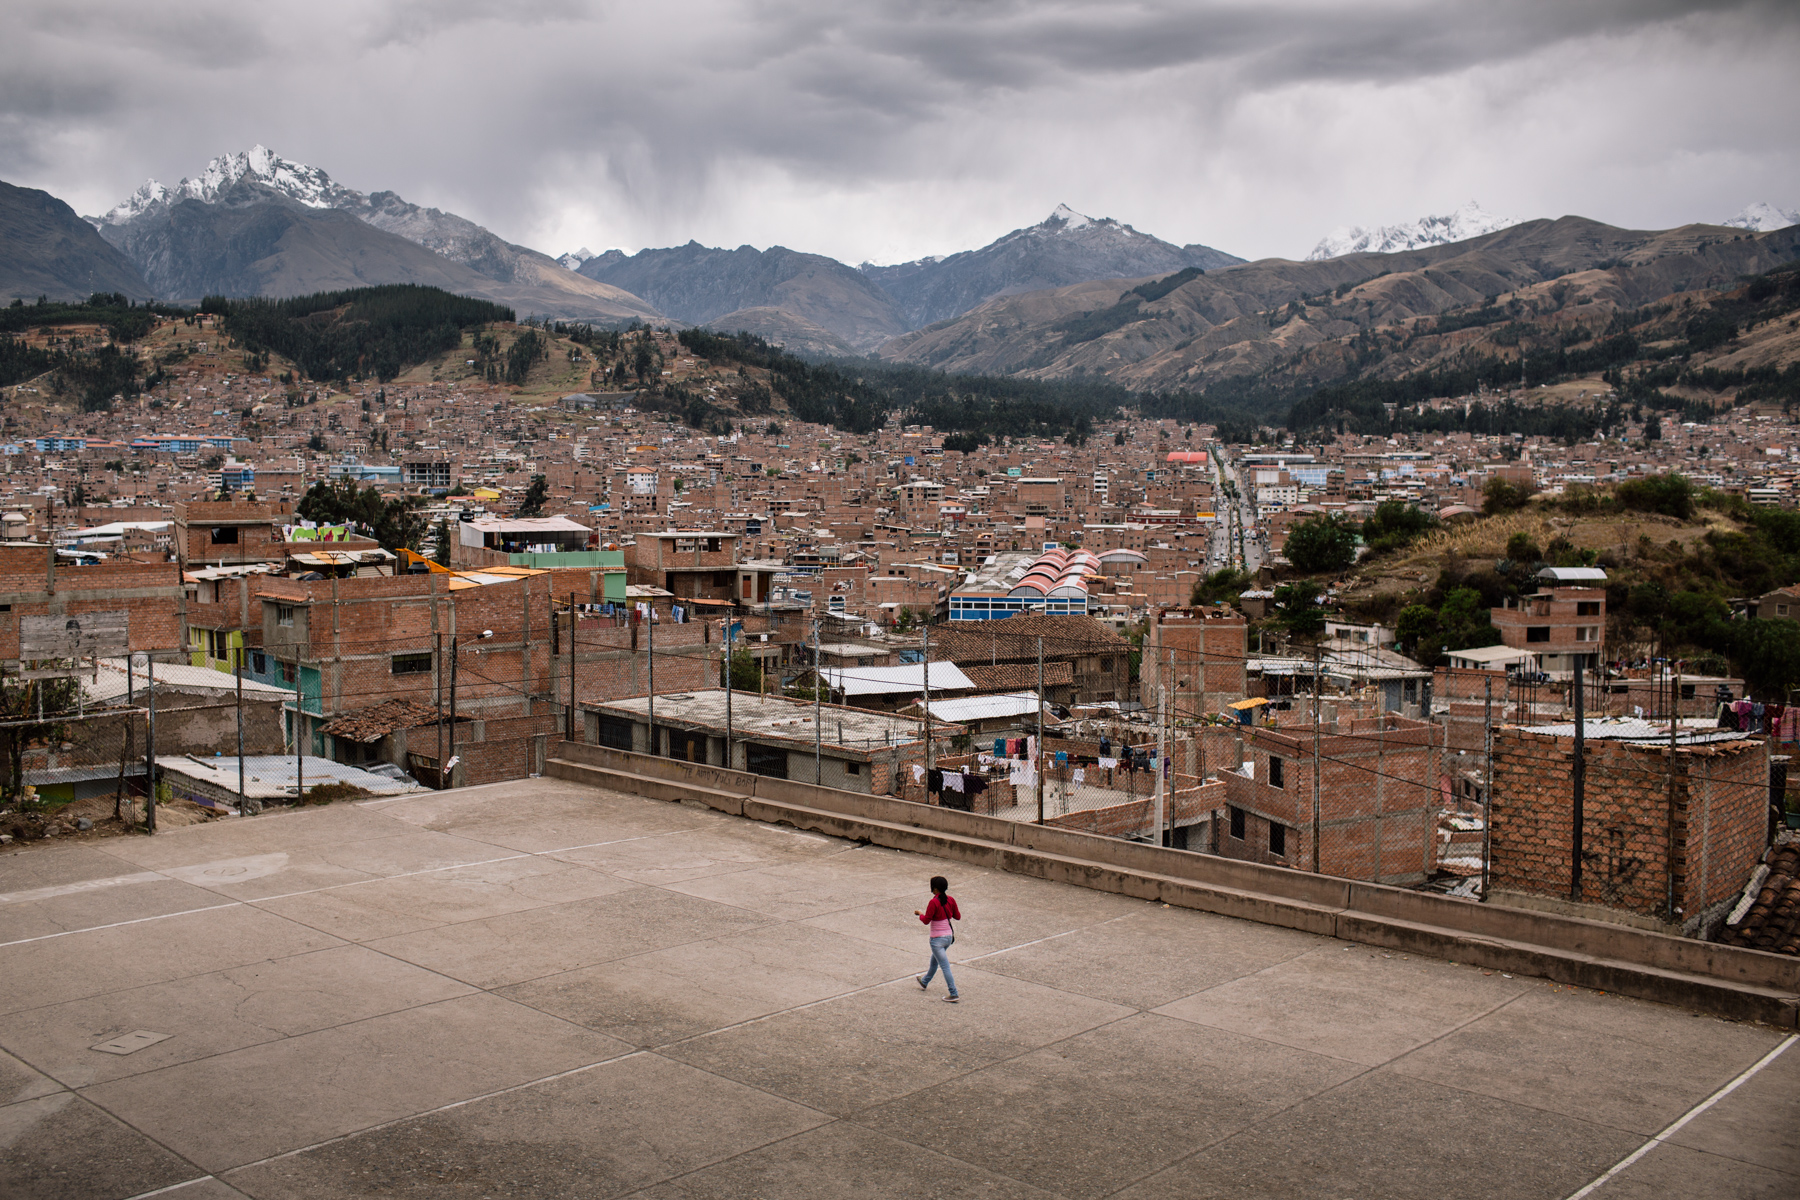 20 kilometers away from Palcacocha, the city of Huaraz never stops expanding. Attracted by the jobs opportunities in the mining industry, people flow from all over the country. As a consequence, criminality is on the rise as well as the price of land. Even in the highly exposed areas of the city.